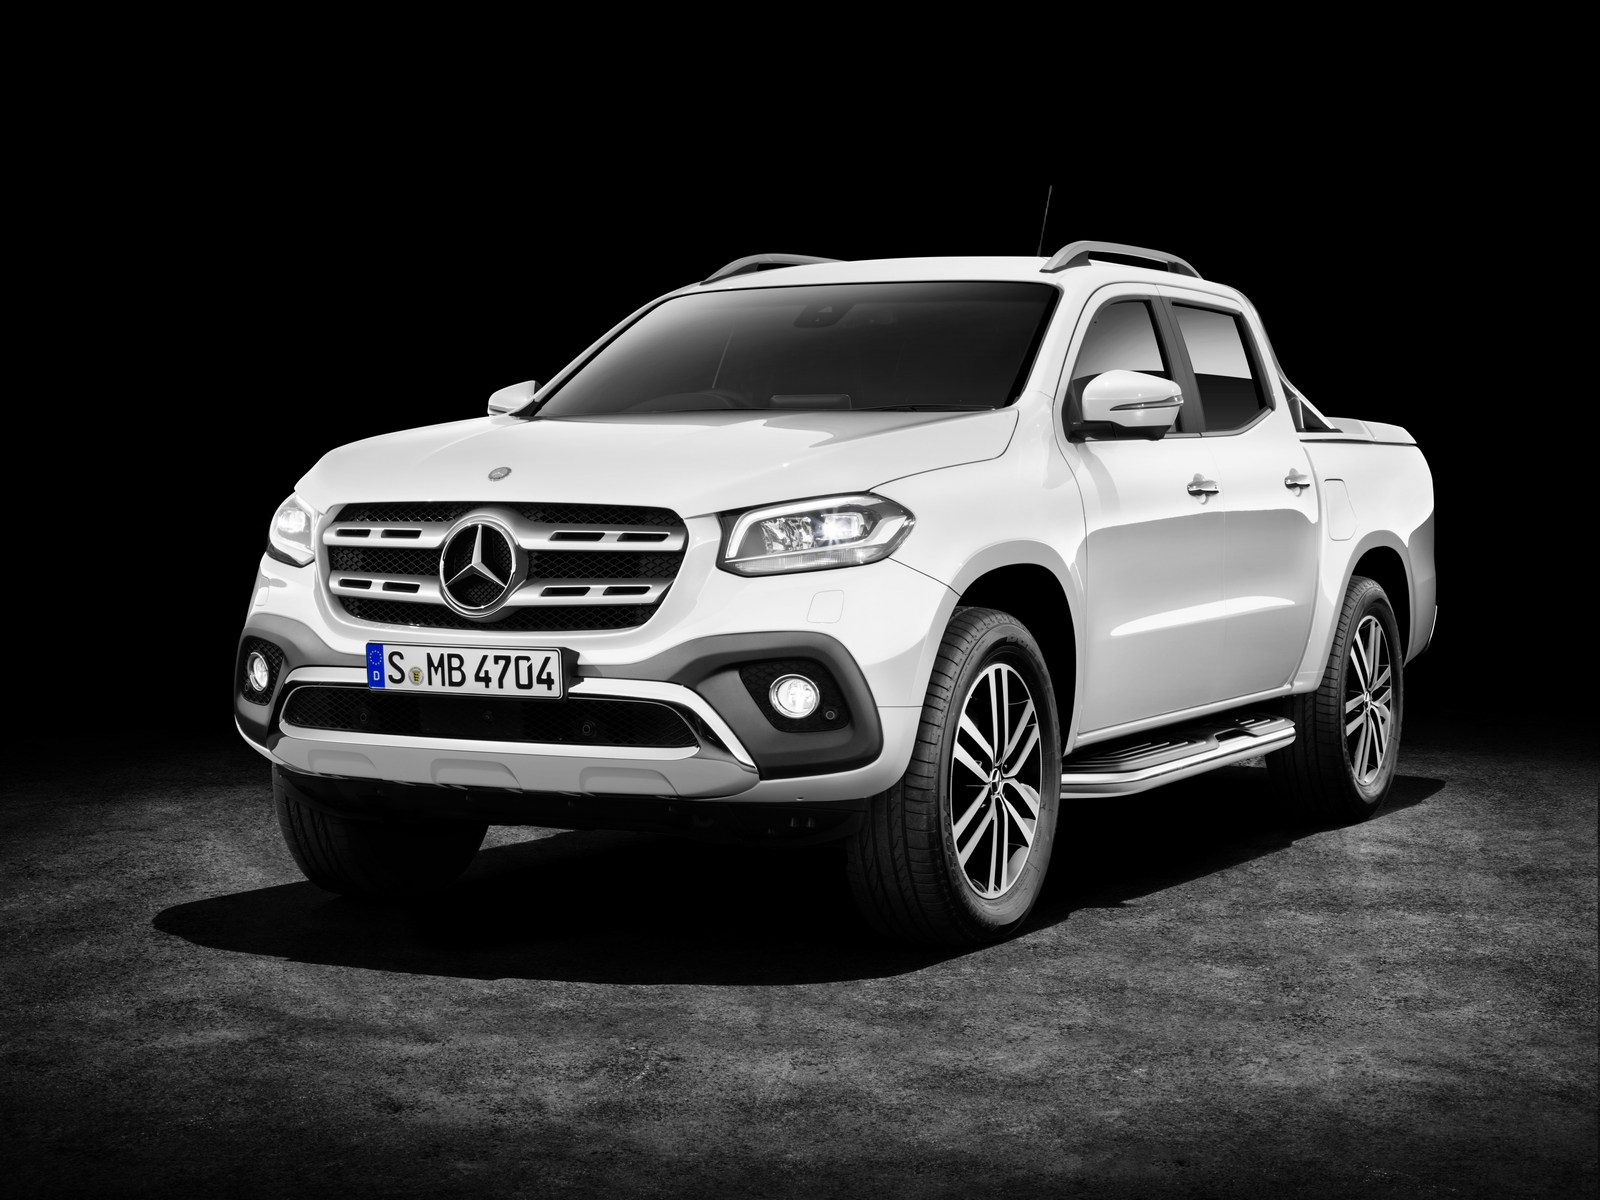 Mercedes-Benz X-Klasse – Exterieur, Beringweiß metallic, Ausstattungslinie POWER, Side Bar, Styling Bar und Hardcover (Mercedes-Benz Zubehör) 